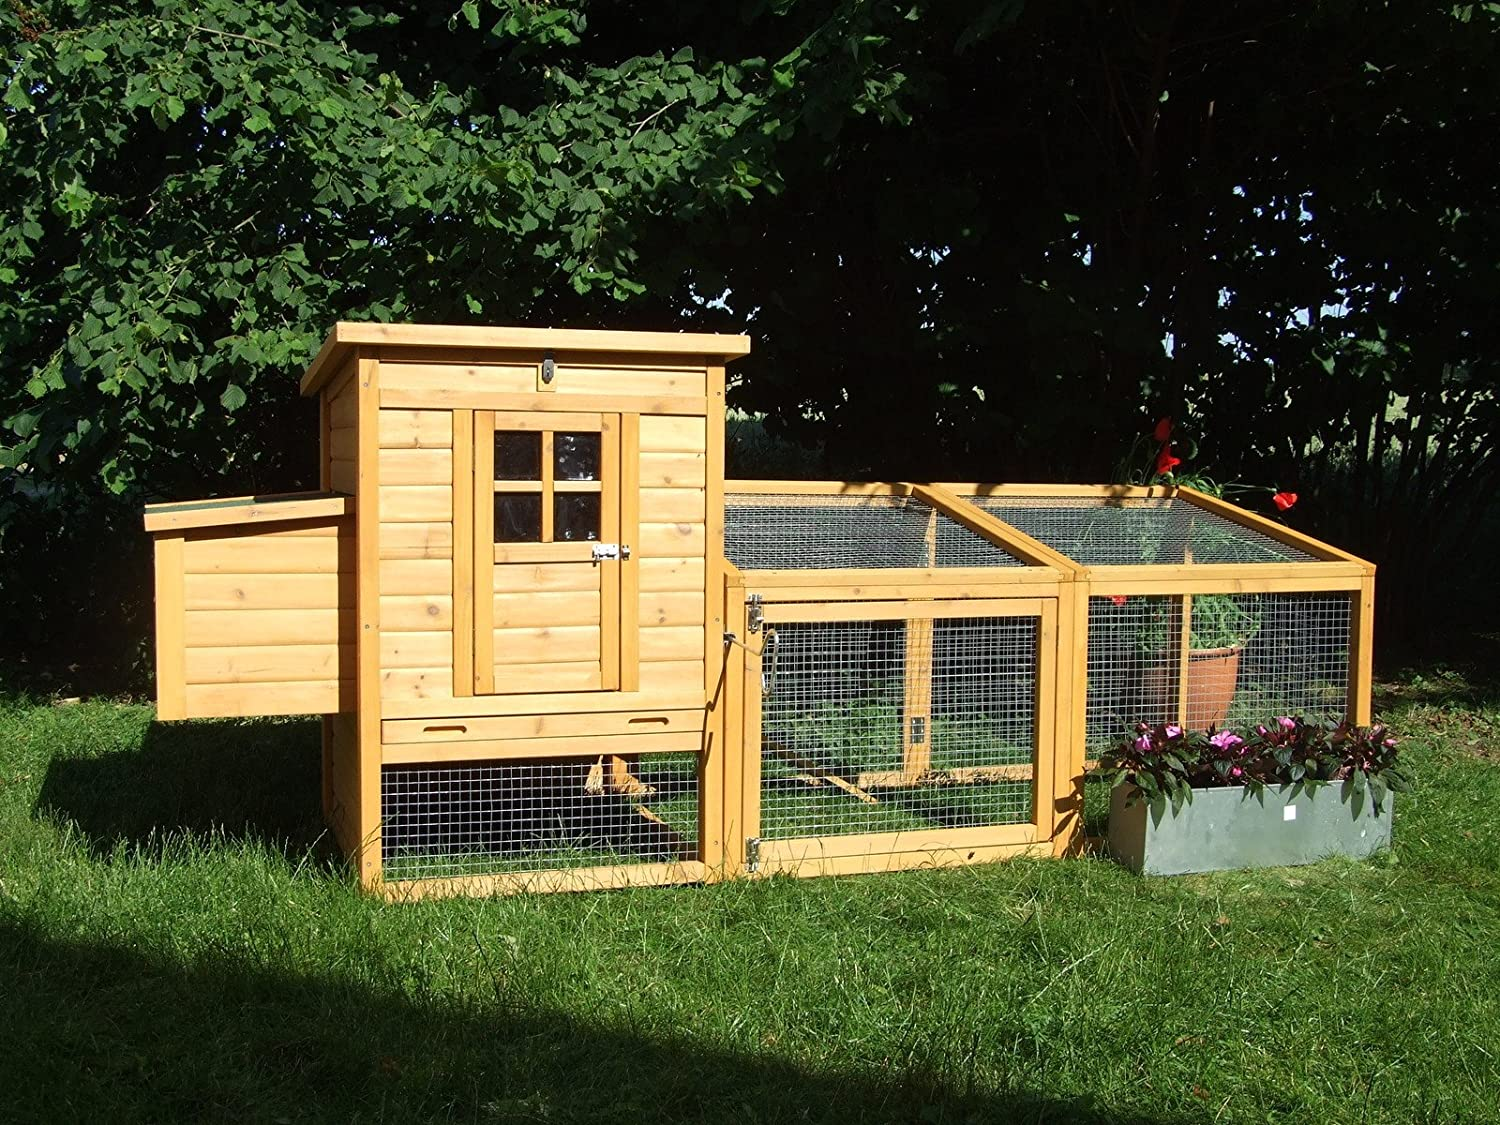 8FT CHICKEN COOP DUCK HEN POULTRY ARK HOUSE HUTCH Run COUP,+ Nest ** No  Deliveries To Postcodes BT GY HS IM IV JE KW PA PH ZE** No Deliveries To